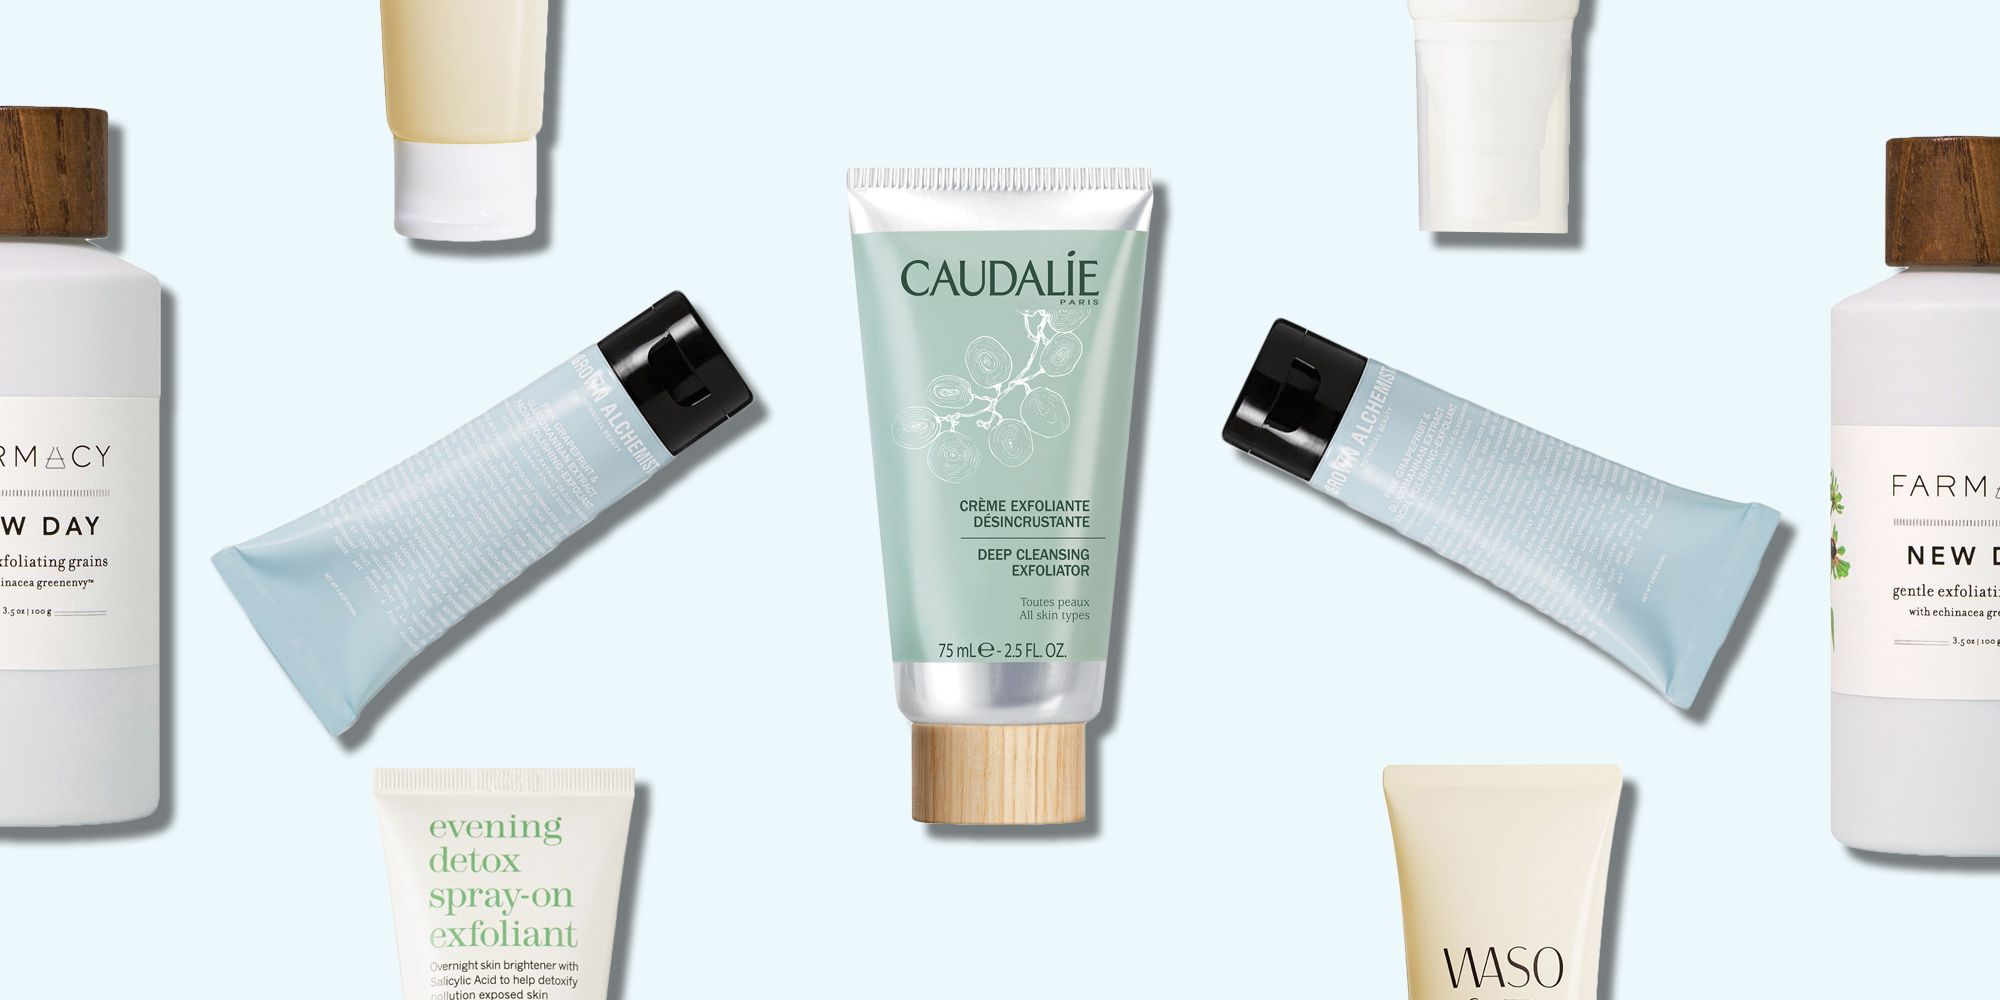 16 Of The Best Face Exfoliators For All Skin Types